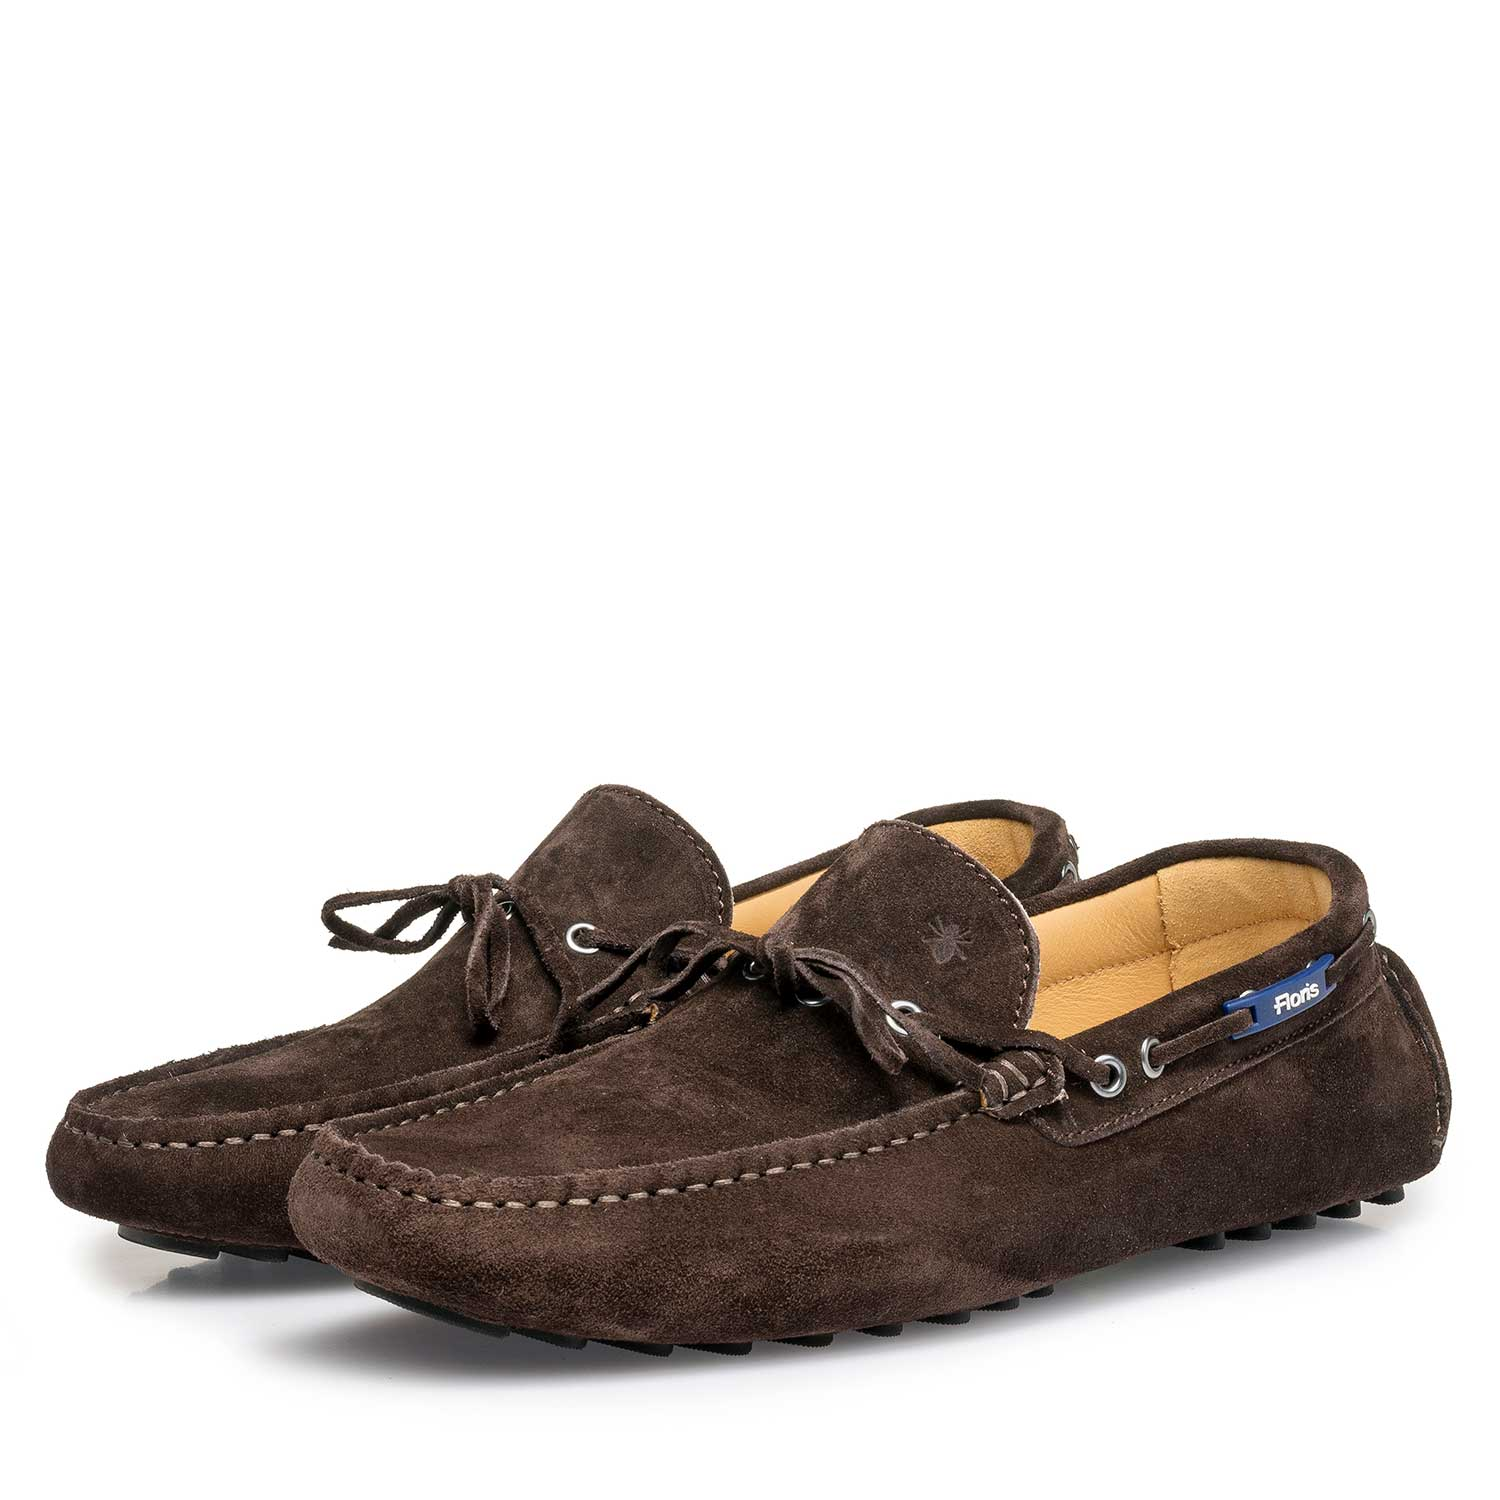 15214/00 - Dark brown calf suede leather moccasin